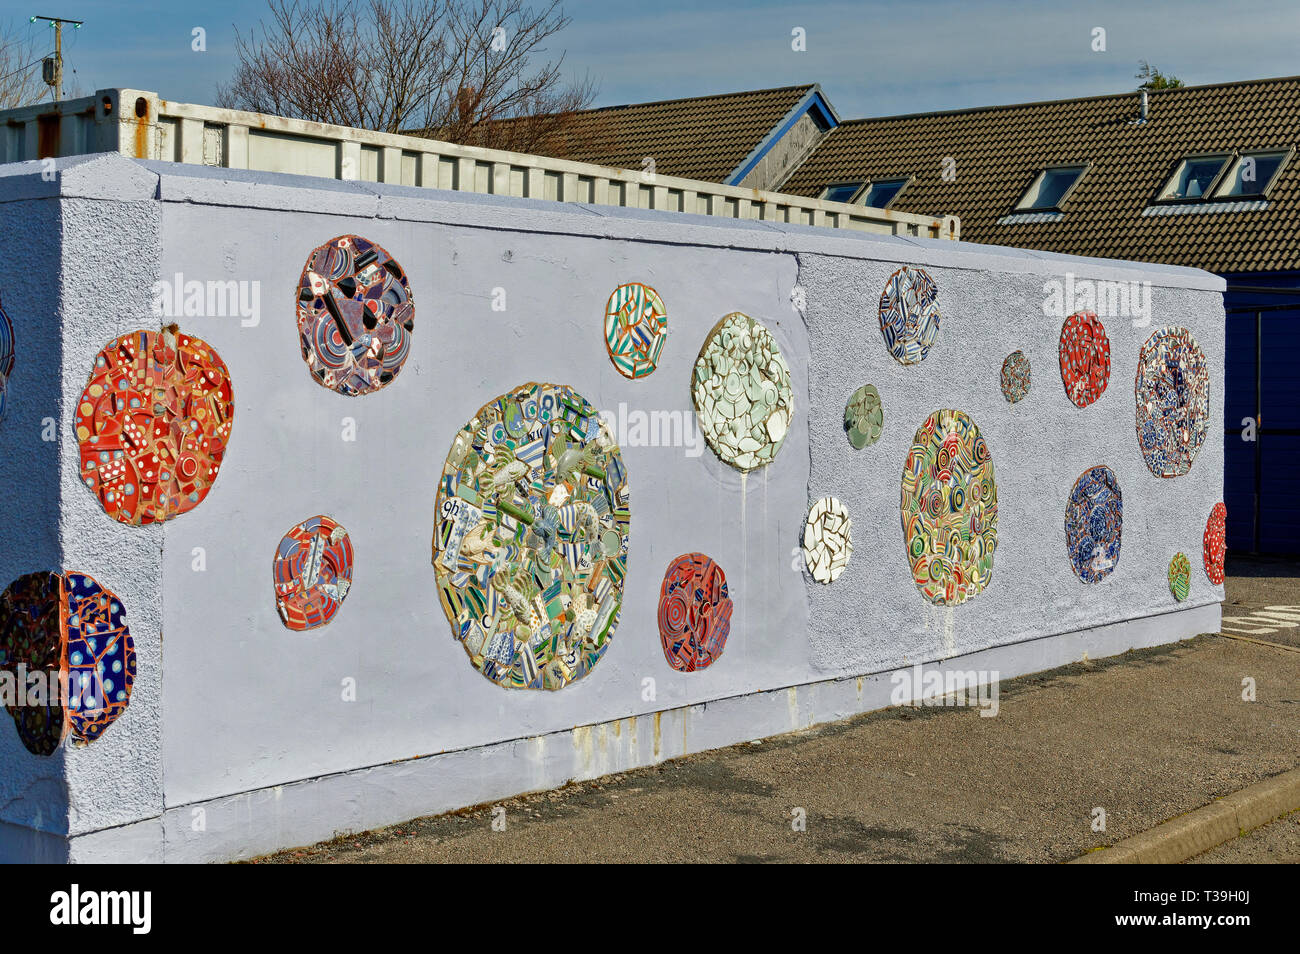 LOCHINVER SUTHERLAND SCOTLAND THE LOCHINVER HIGHLAND STONEWARE HOUSE OR STUDIO AND DECORATED WALL - Stock Image